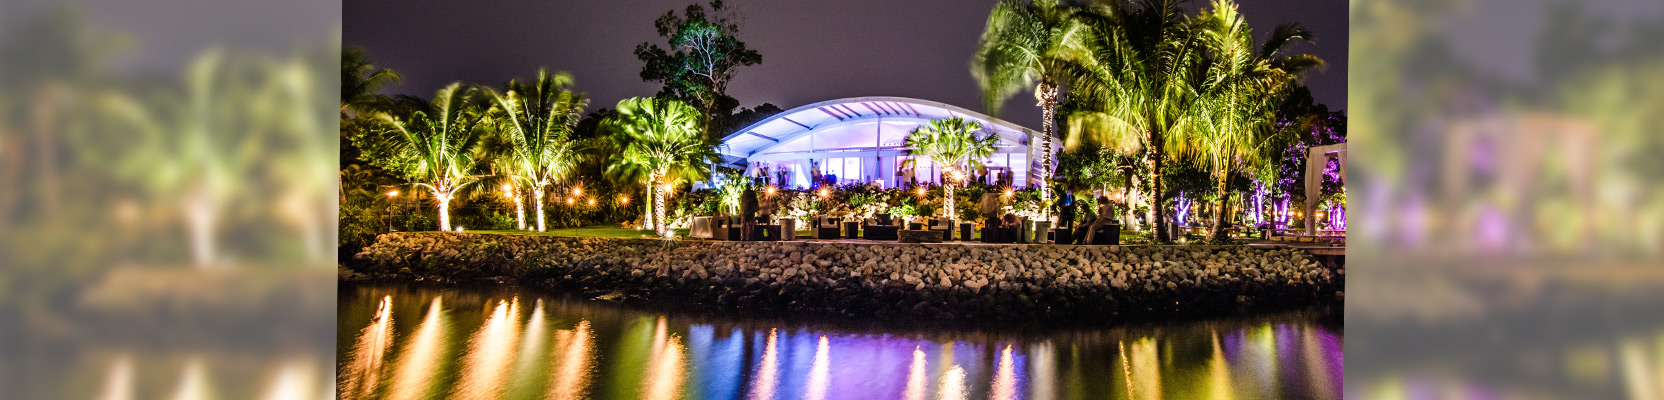 wedding tents and lighting